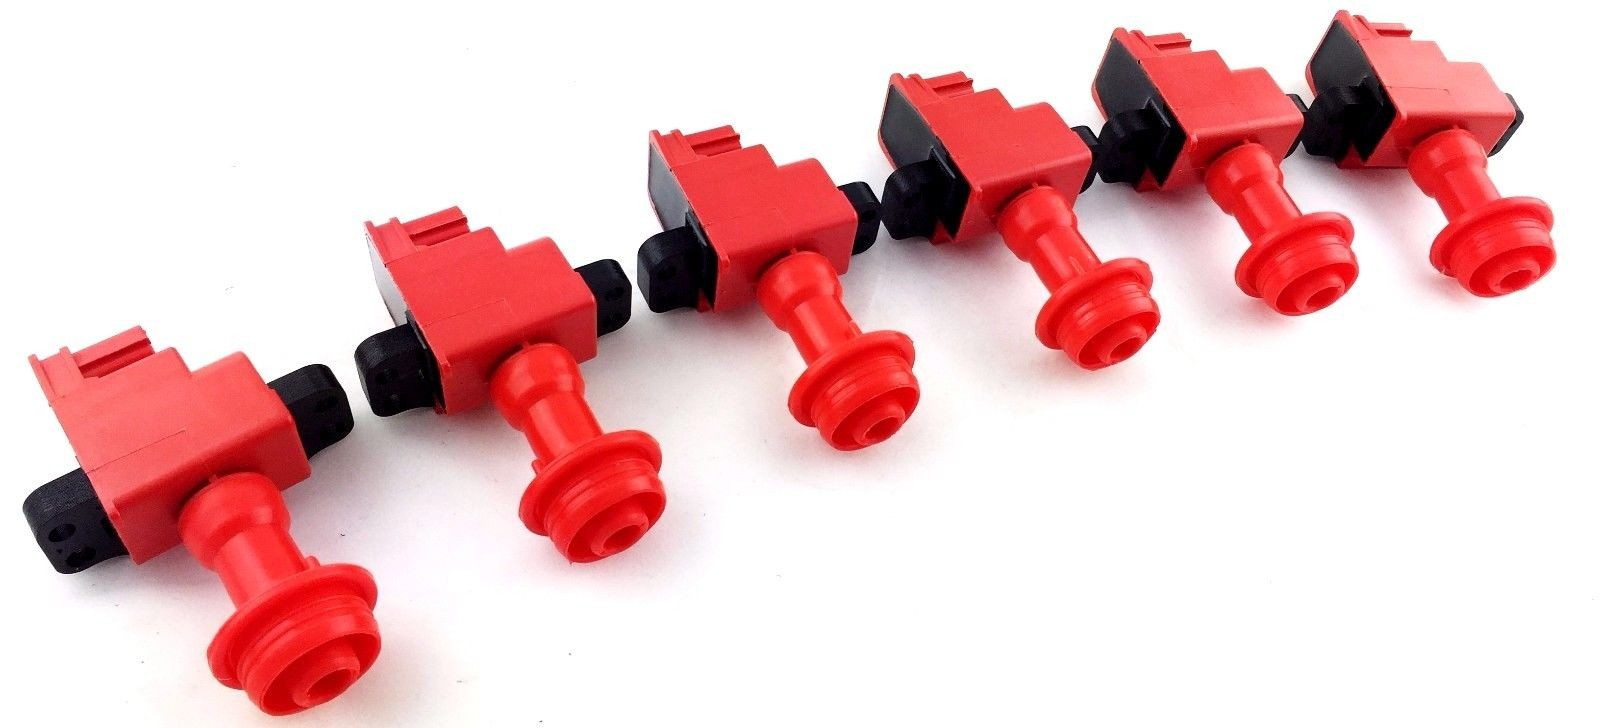 1997-2002 IGNITION COIL PACKS SKYLINE NEO STAGEA RS FOUR GLORIA RB25DET 2.5L JDM